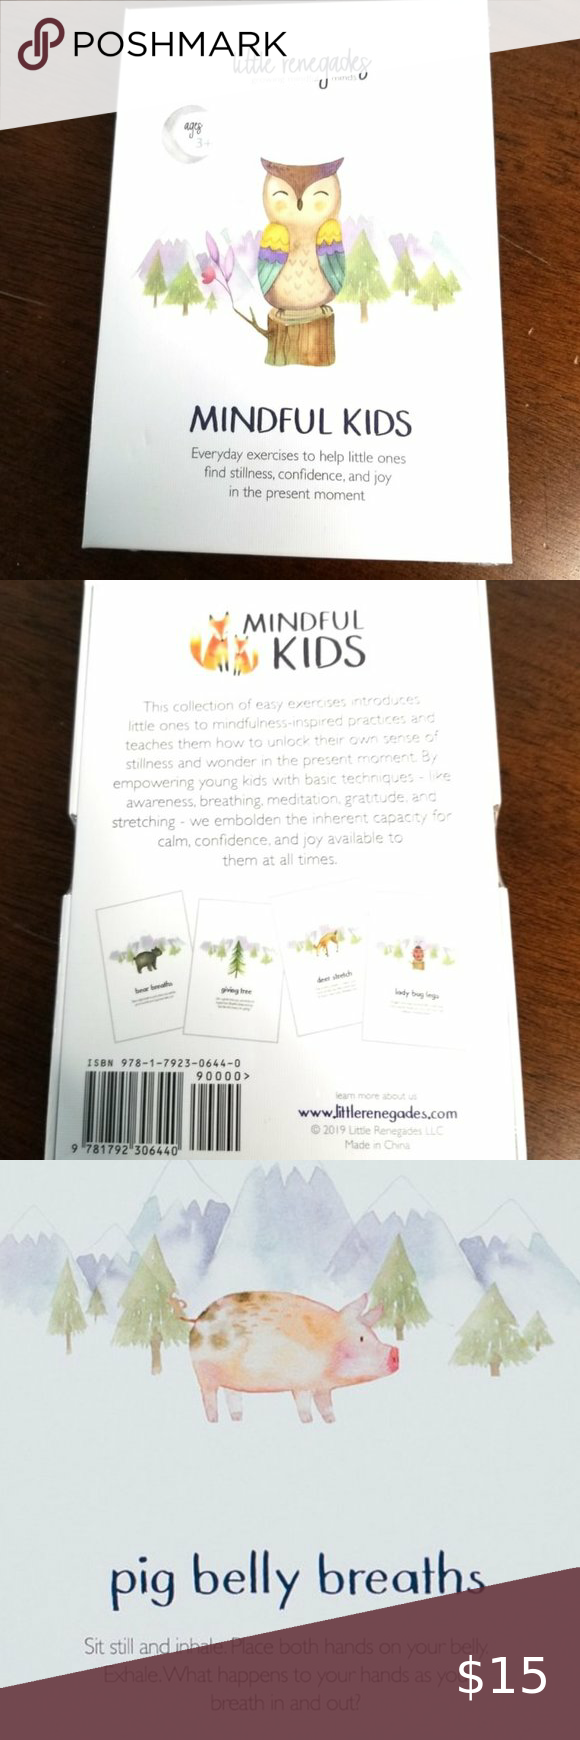 Mindful Kids By Little Renegades In 2020 Morning Ritual Mindfulness Kids